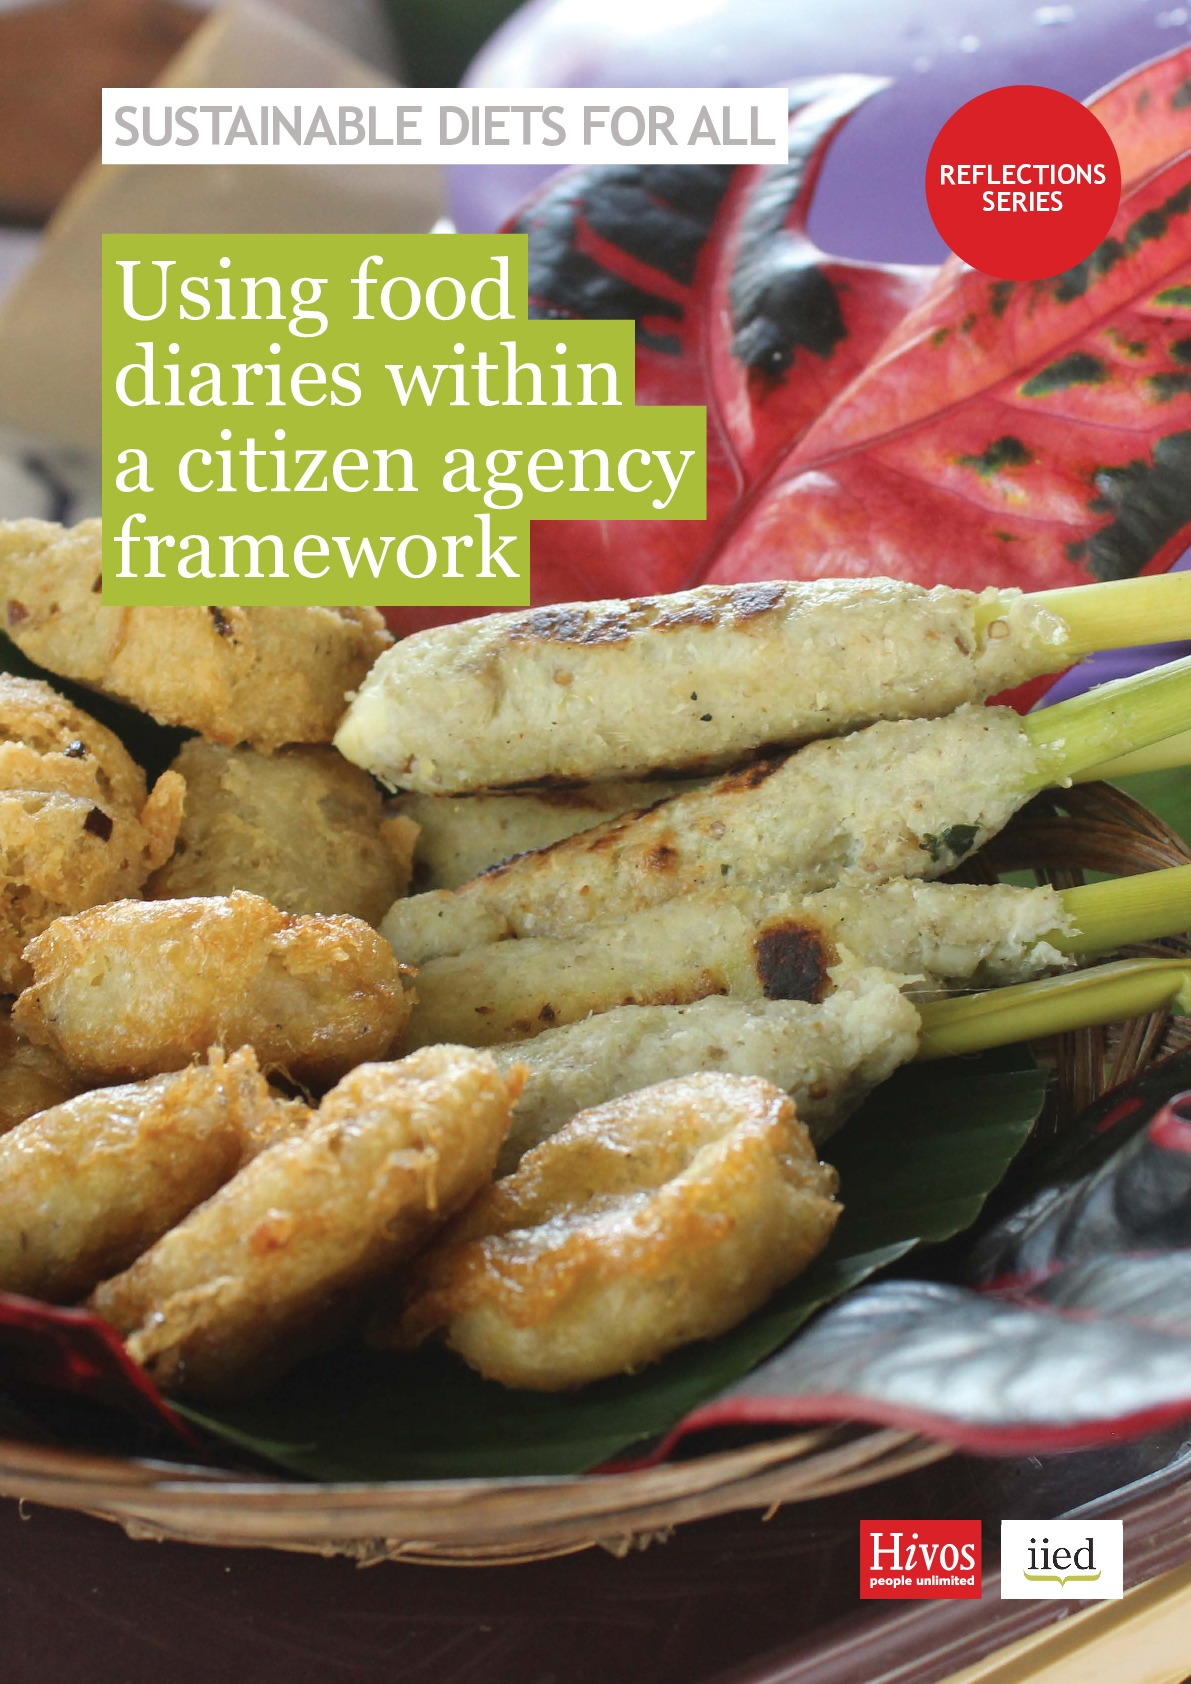 Using food diaries within a citizen agency framework